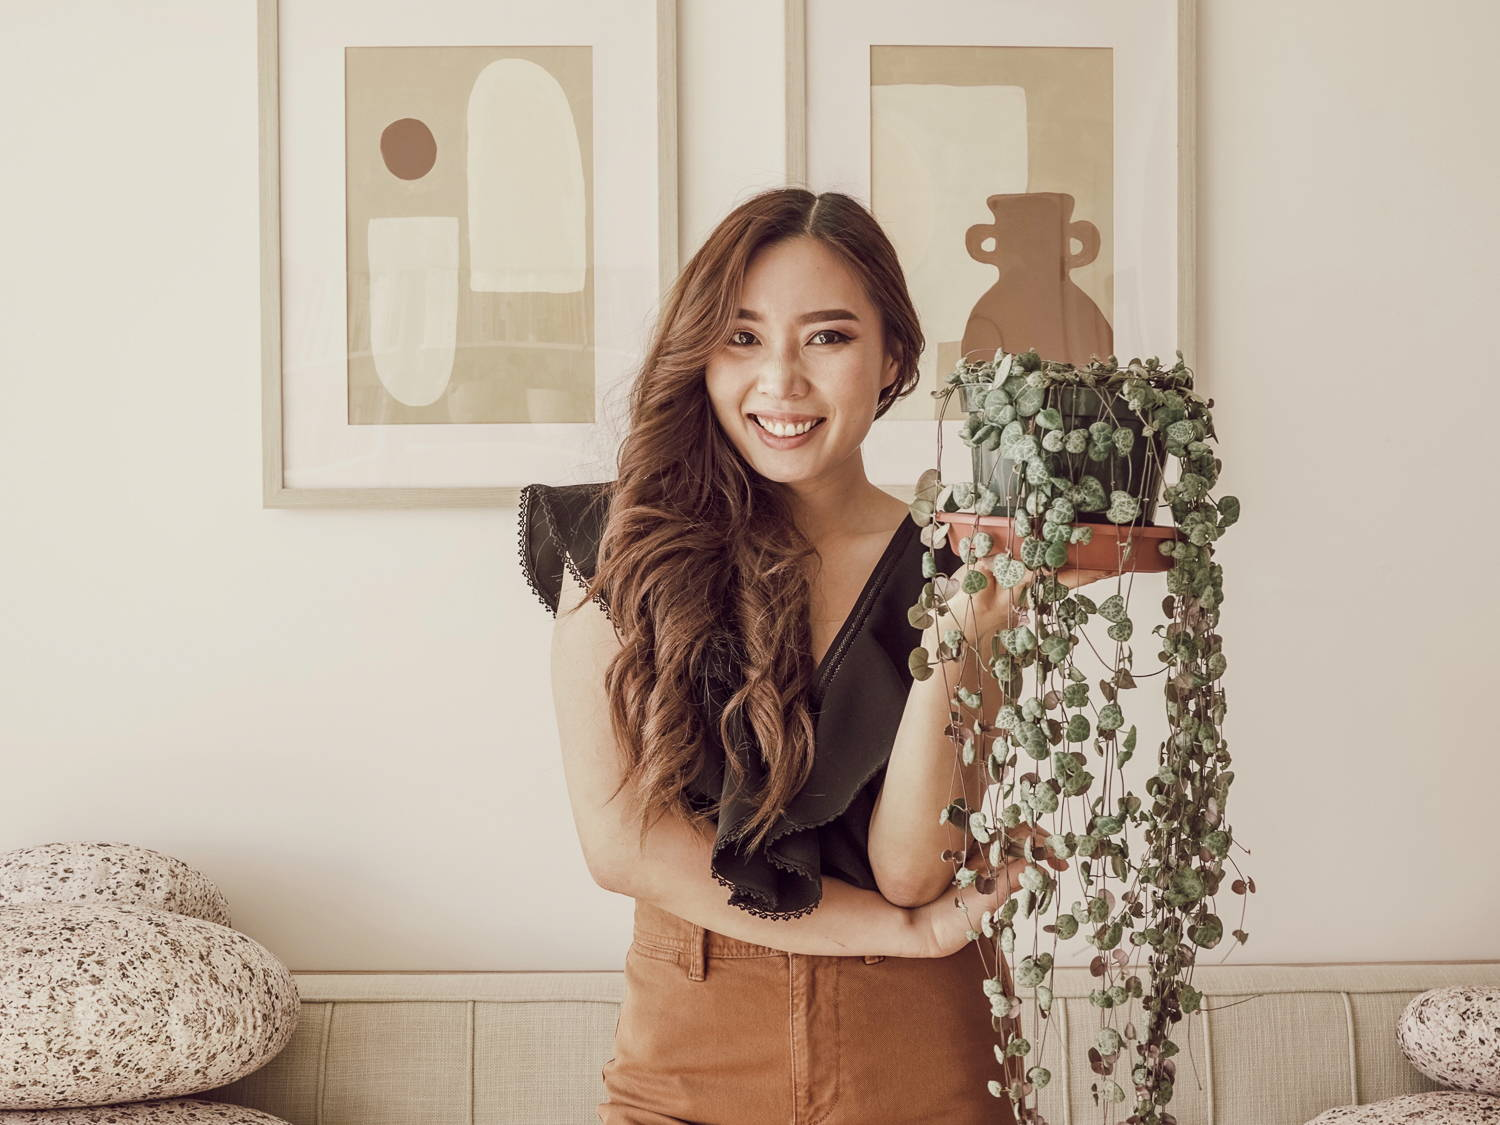 Picture of Anh Lin holding a pot with plant